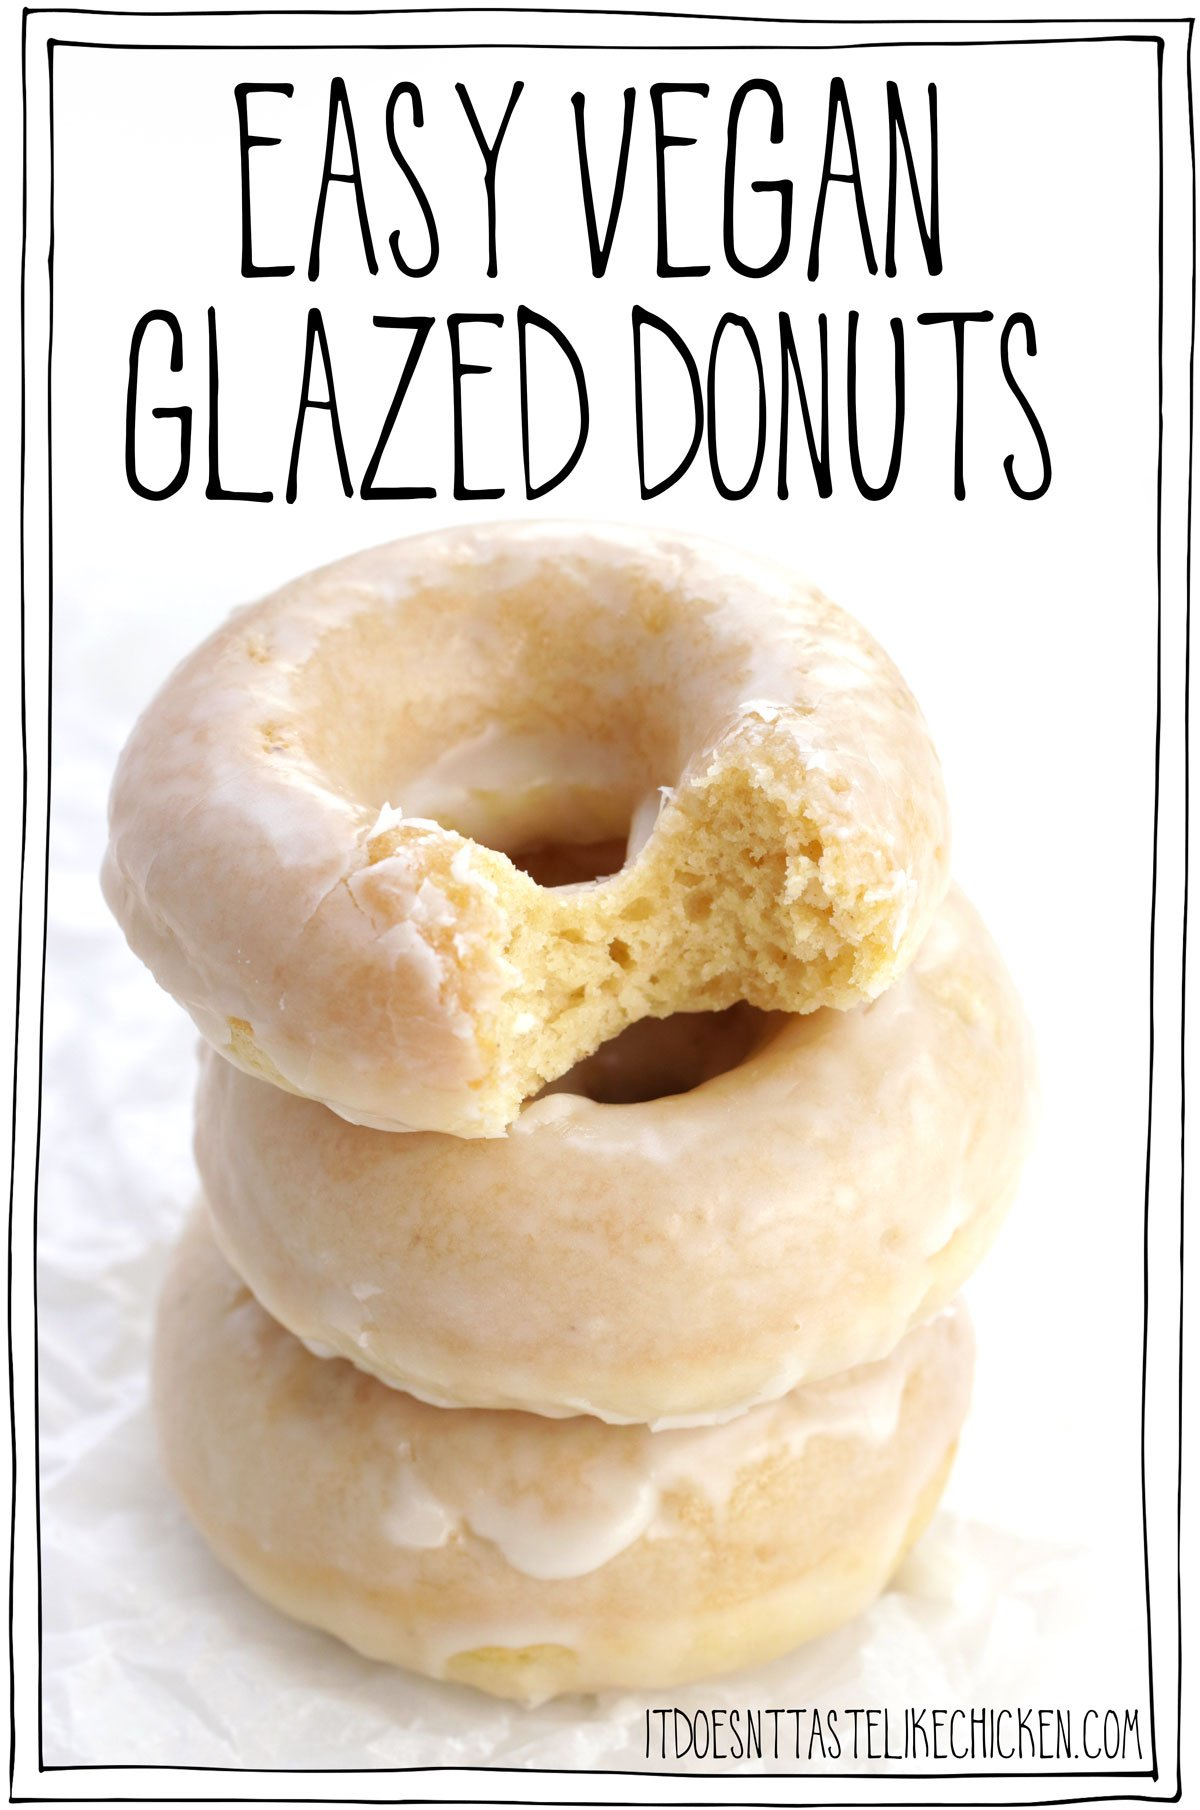 So fluffy and light yet decadent and sweet, Easy Vegan Glazed Donuts are just 10 ingredients and take less than 30 minutes to make. These sugary flavour bombs are an explosion of sweet, melt in your mouth deliciousness with every bite that will have you reaching for another one before you're done your first!